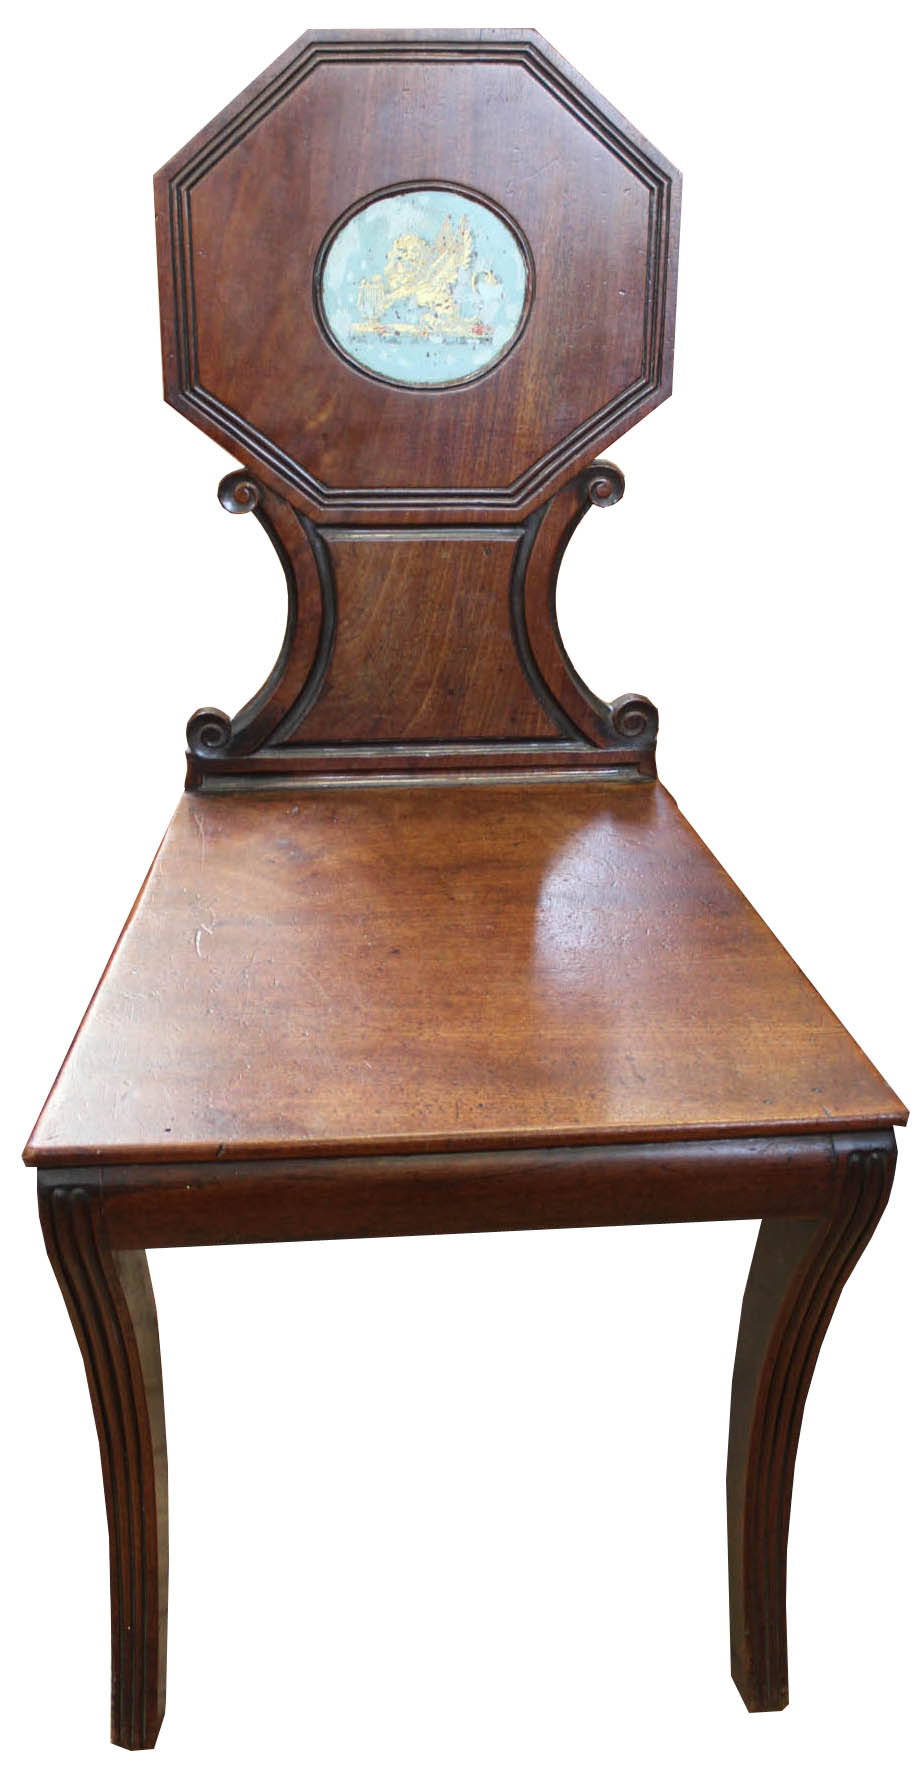 Lot 1058 - A Regency mahogany sabre leg hall chair with painted crest to back